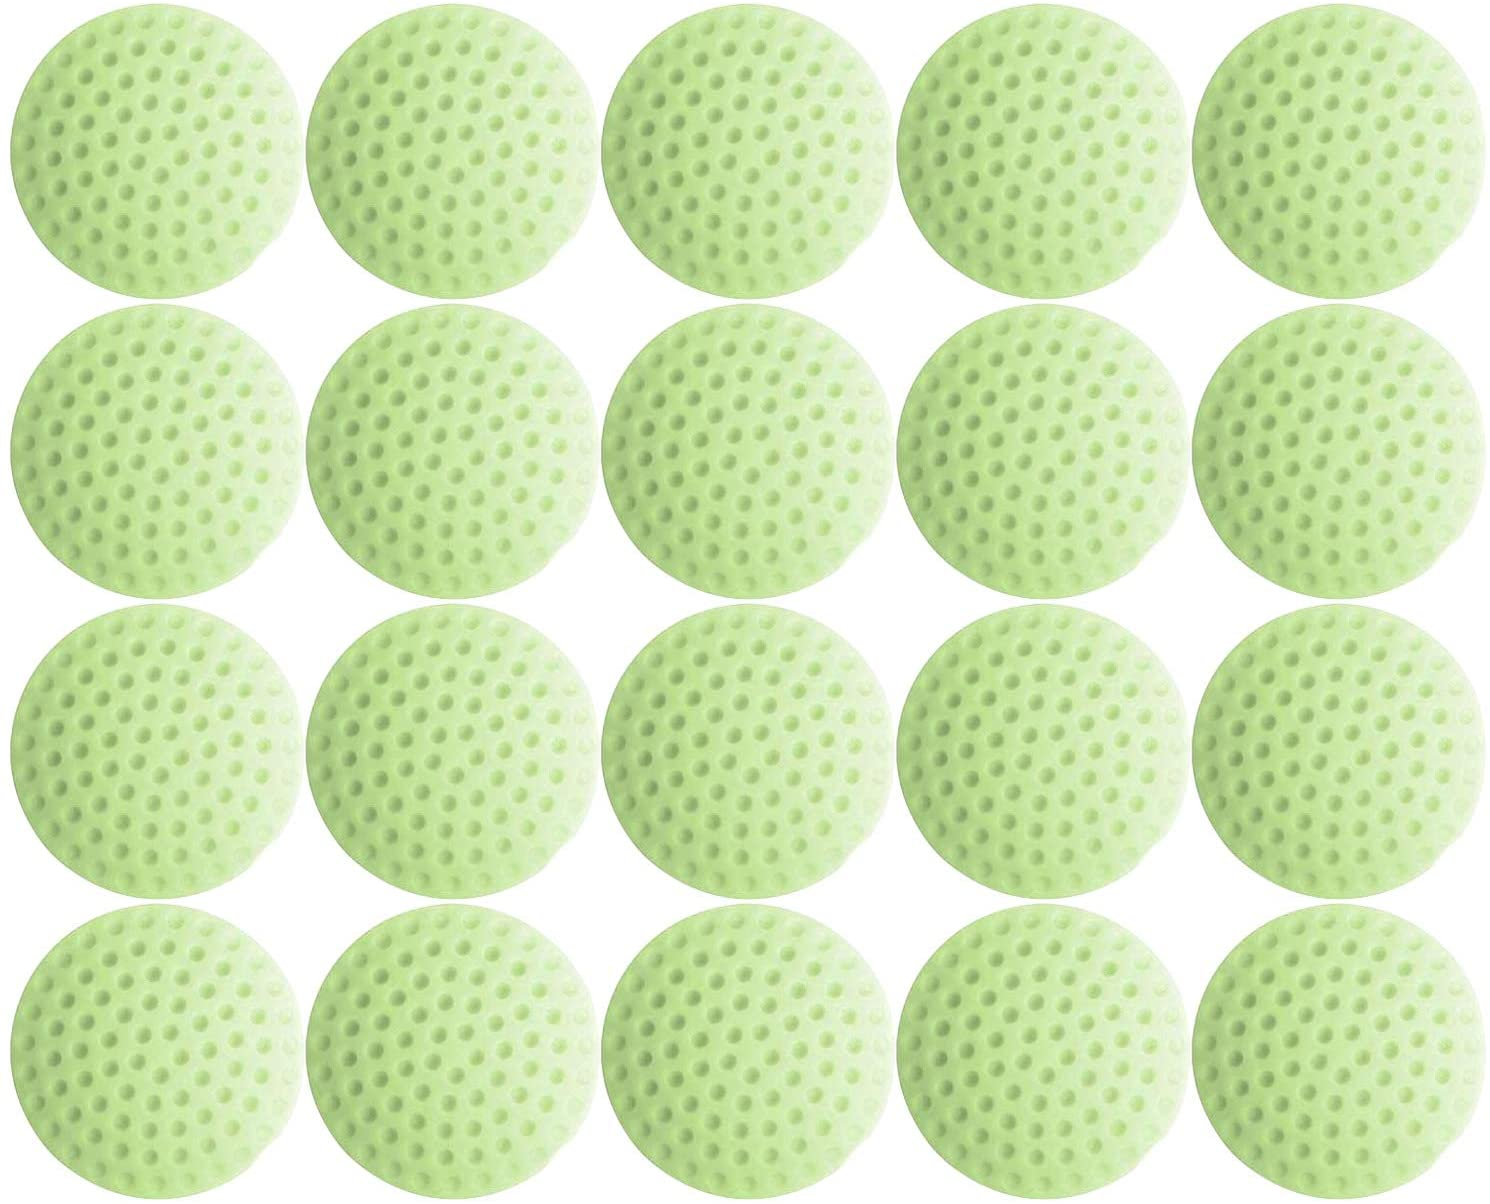 20 Pieces Golf Style Door Stopper Bumper Silicone Wall Protector Knob Guard with Self Adhesive 3M Sticker - Green